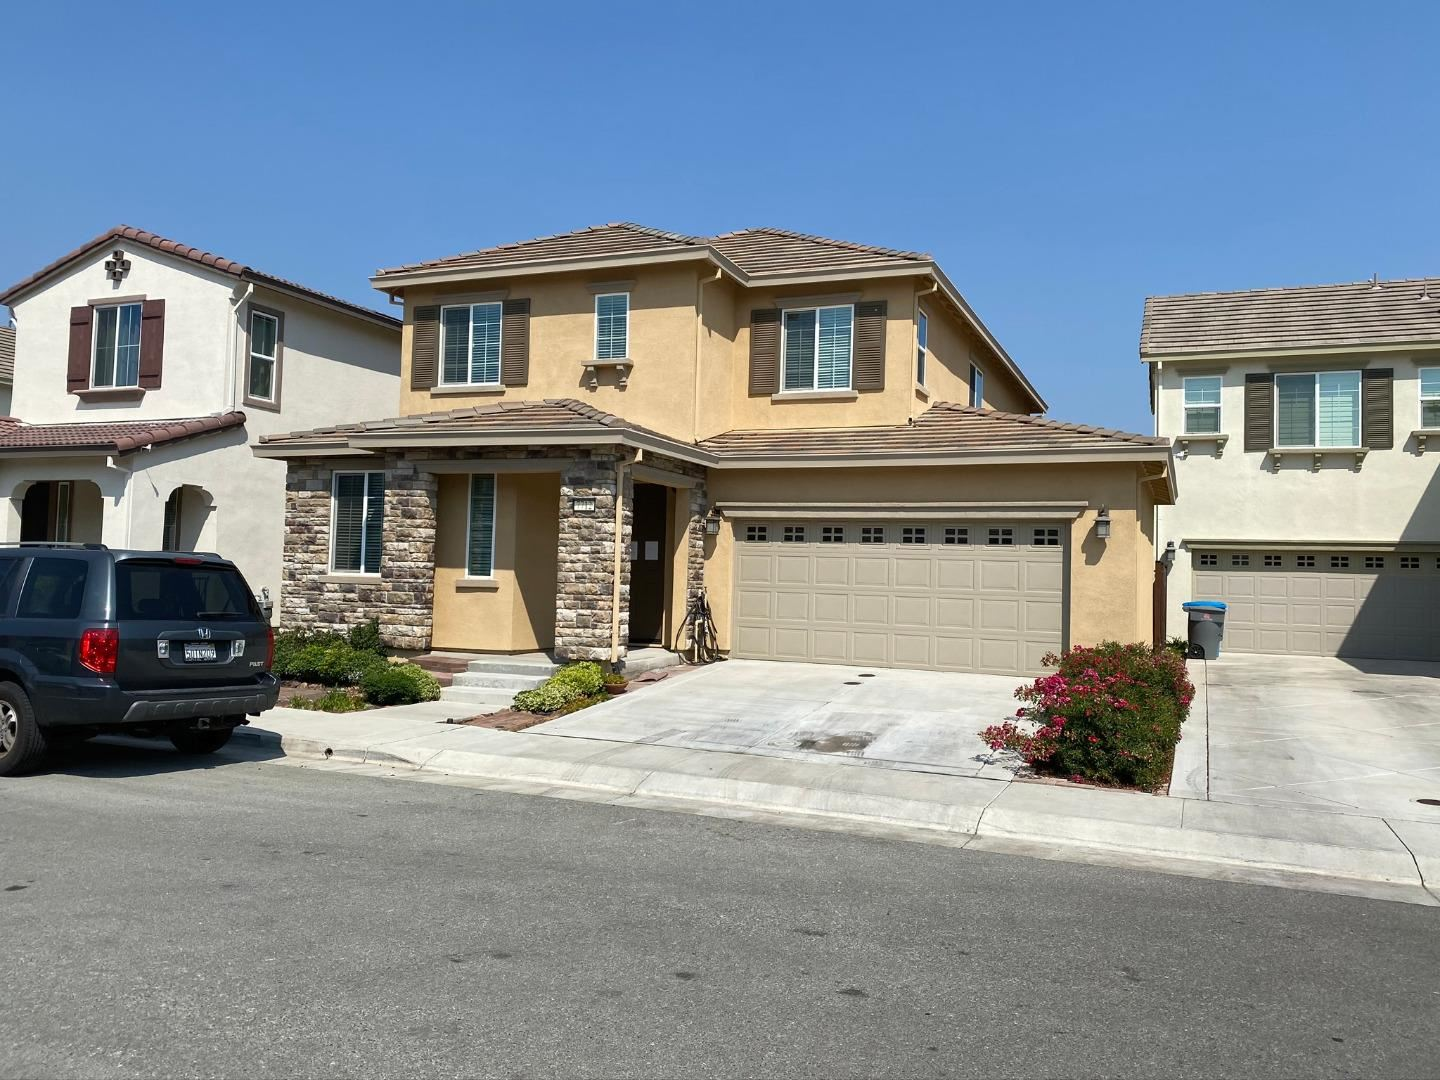 Photo for 7712 Sumac PL, GILROY, CA 95020 (MLS # ML81809940)